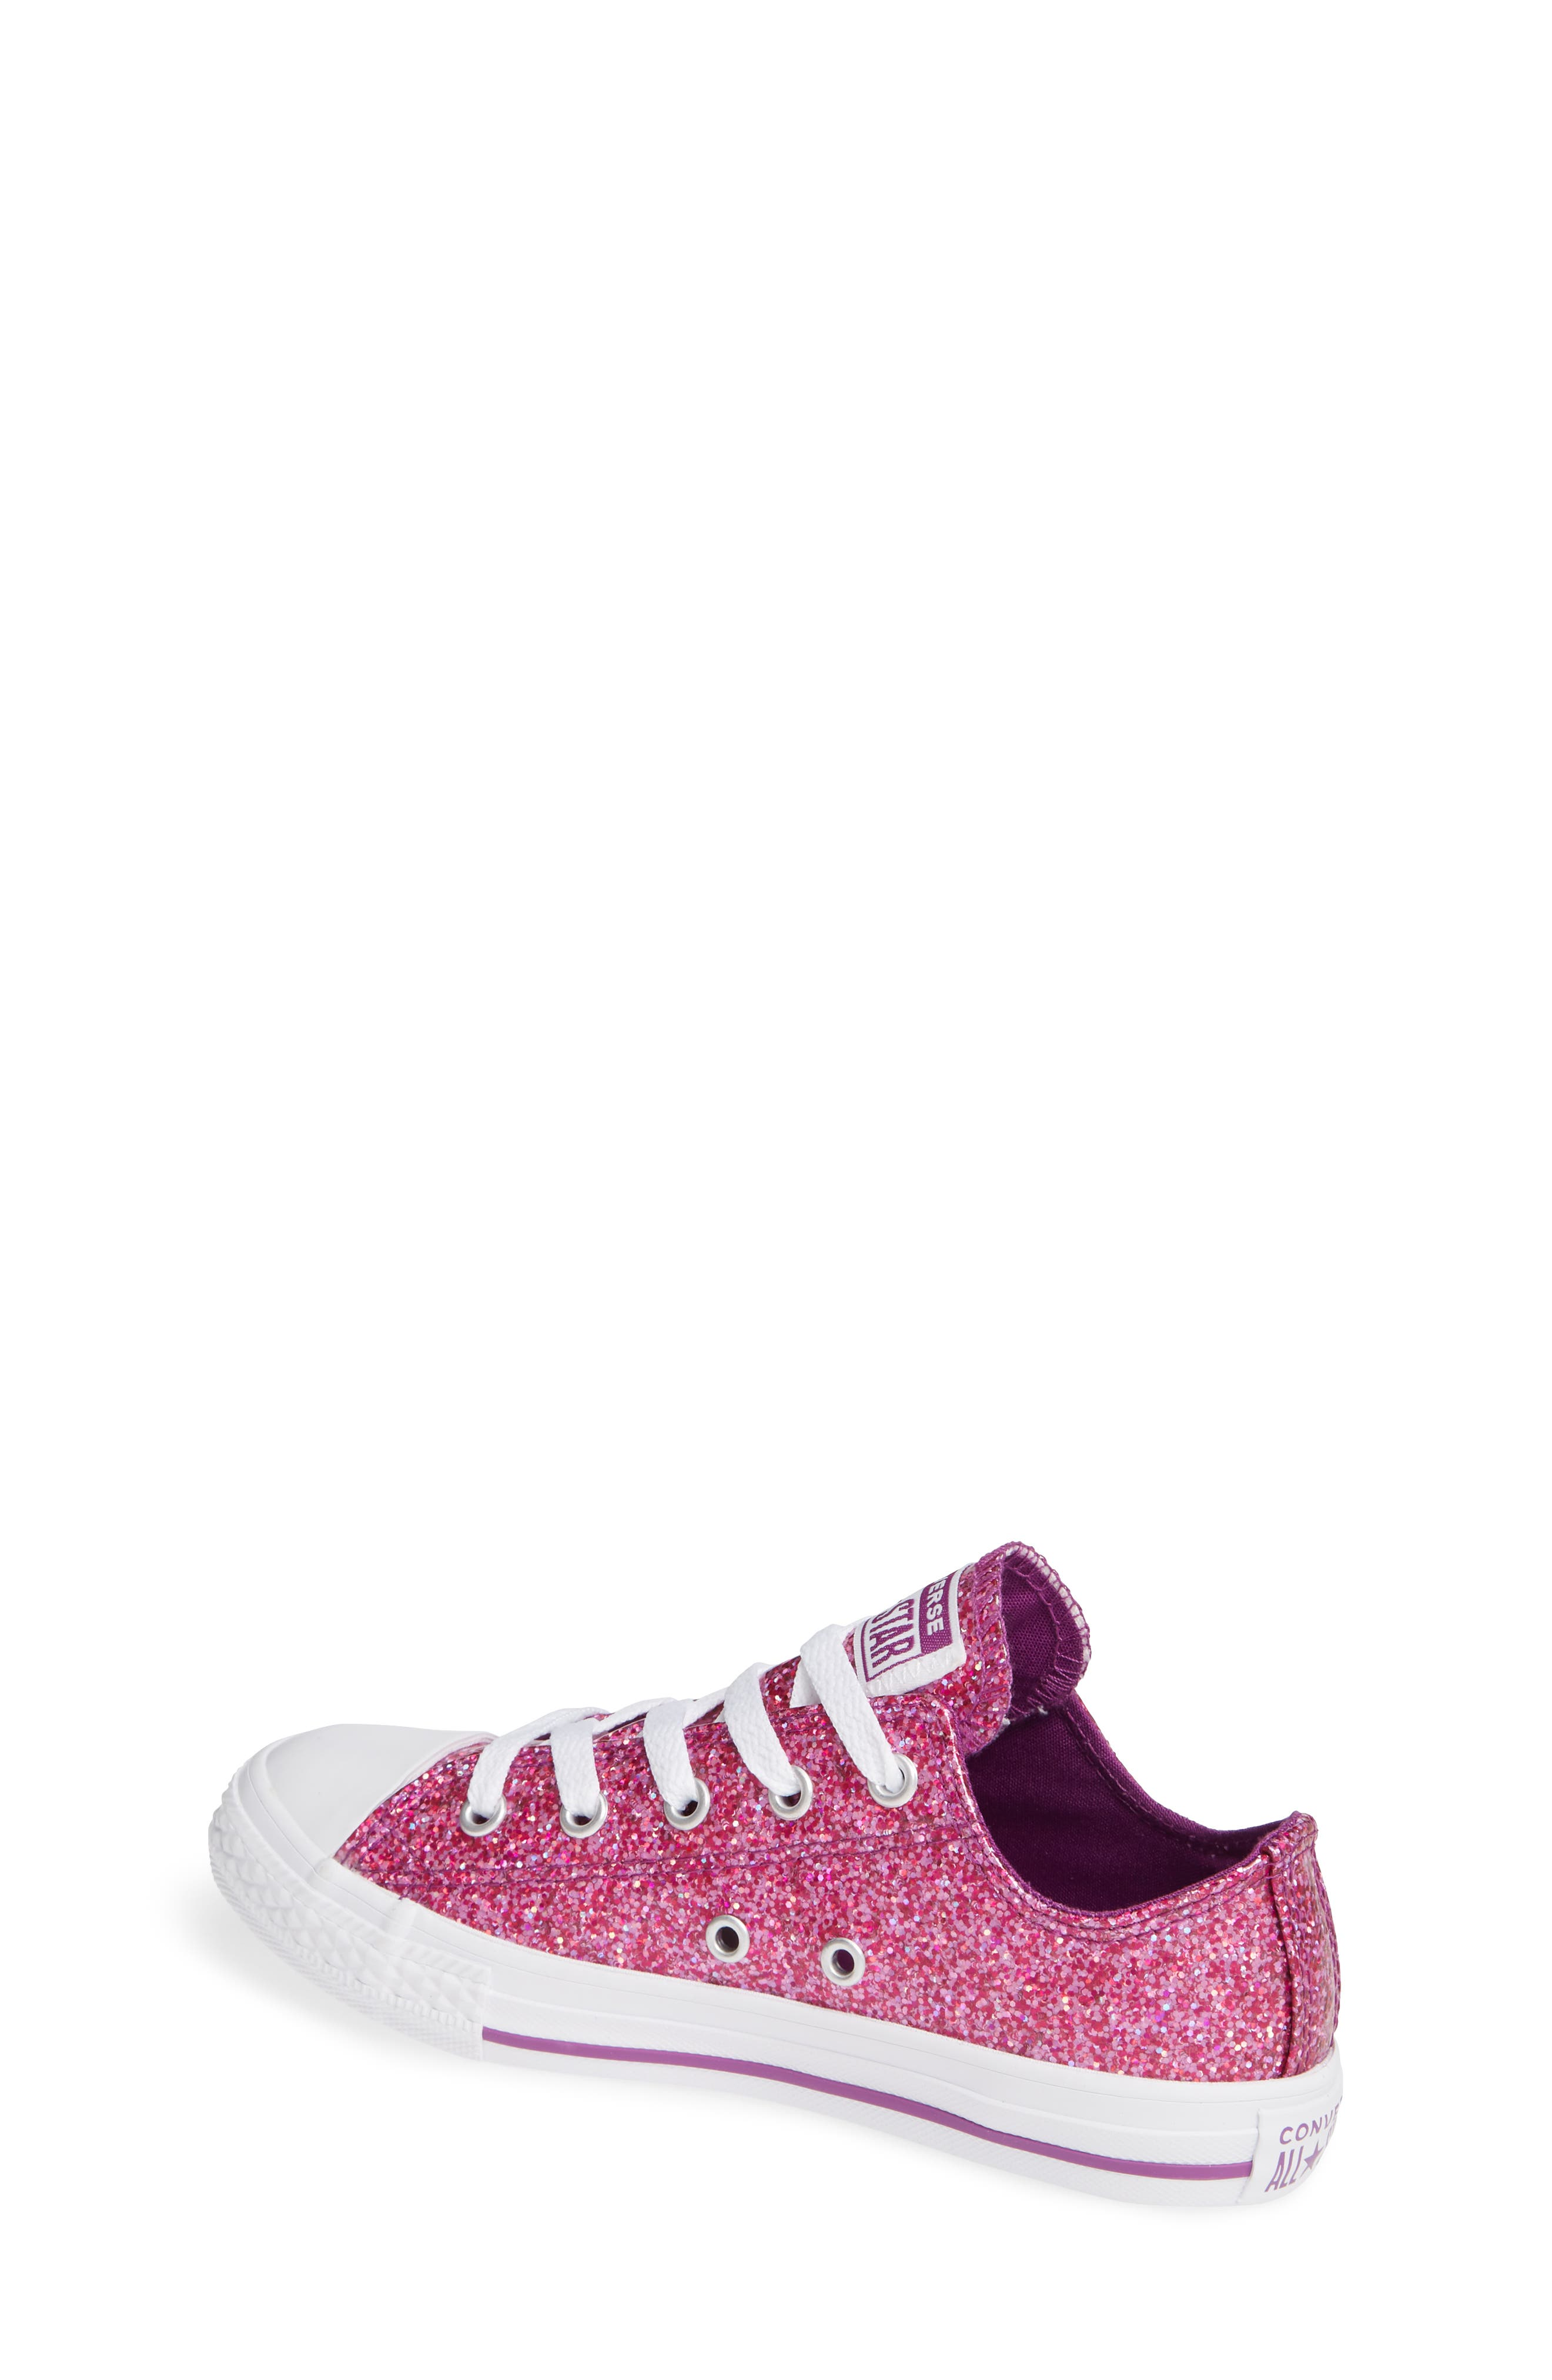 All Star<sup>®</sup> Seasonal Glitter OX Low Top Sneaker,                             Alternate thumbnail 2, color,                             ICON VIOLET